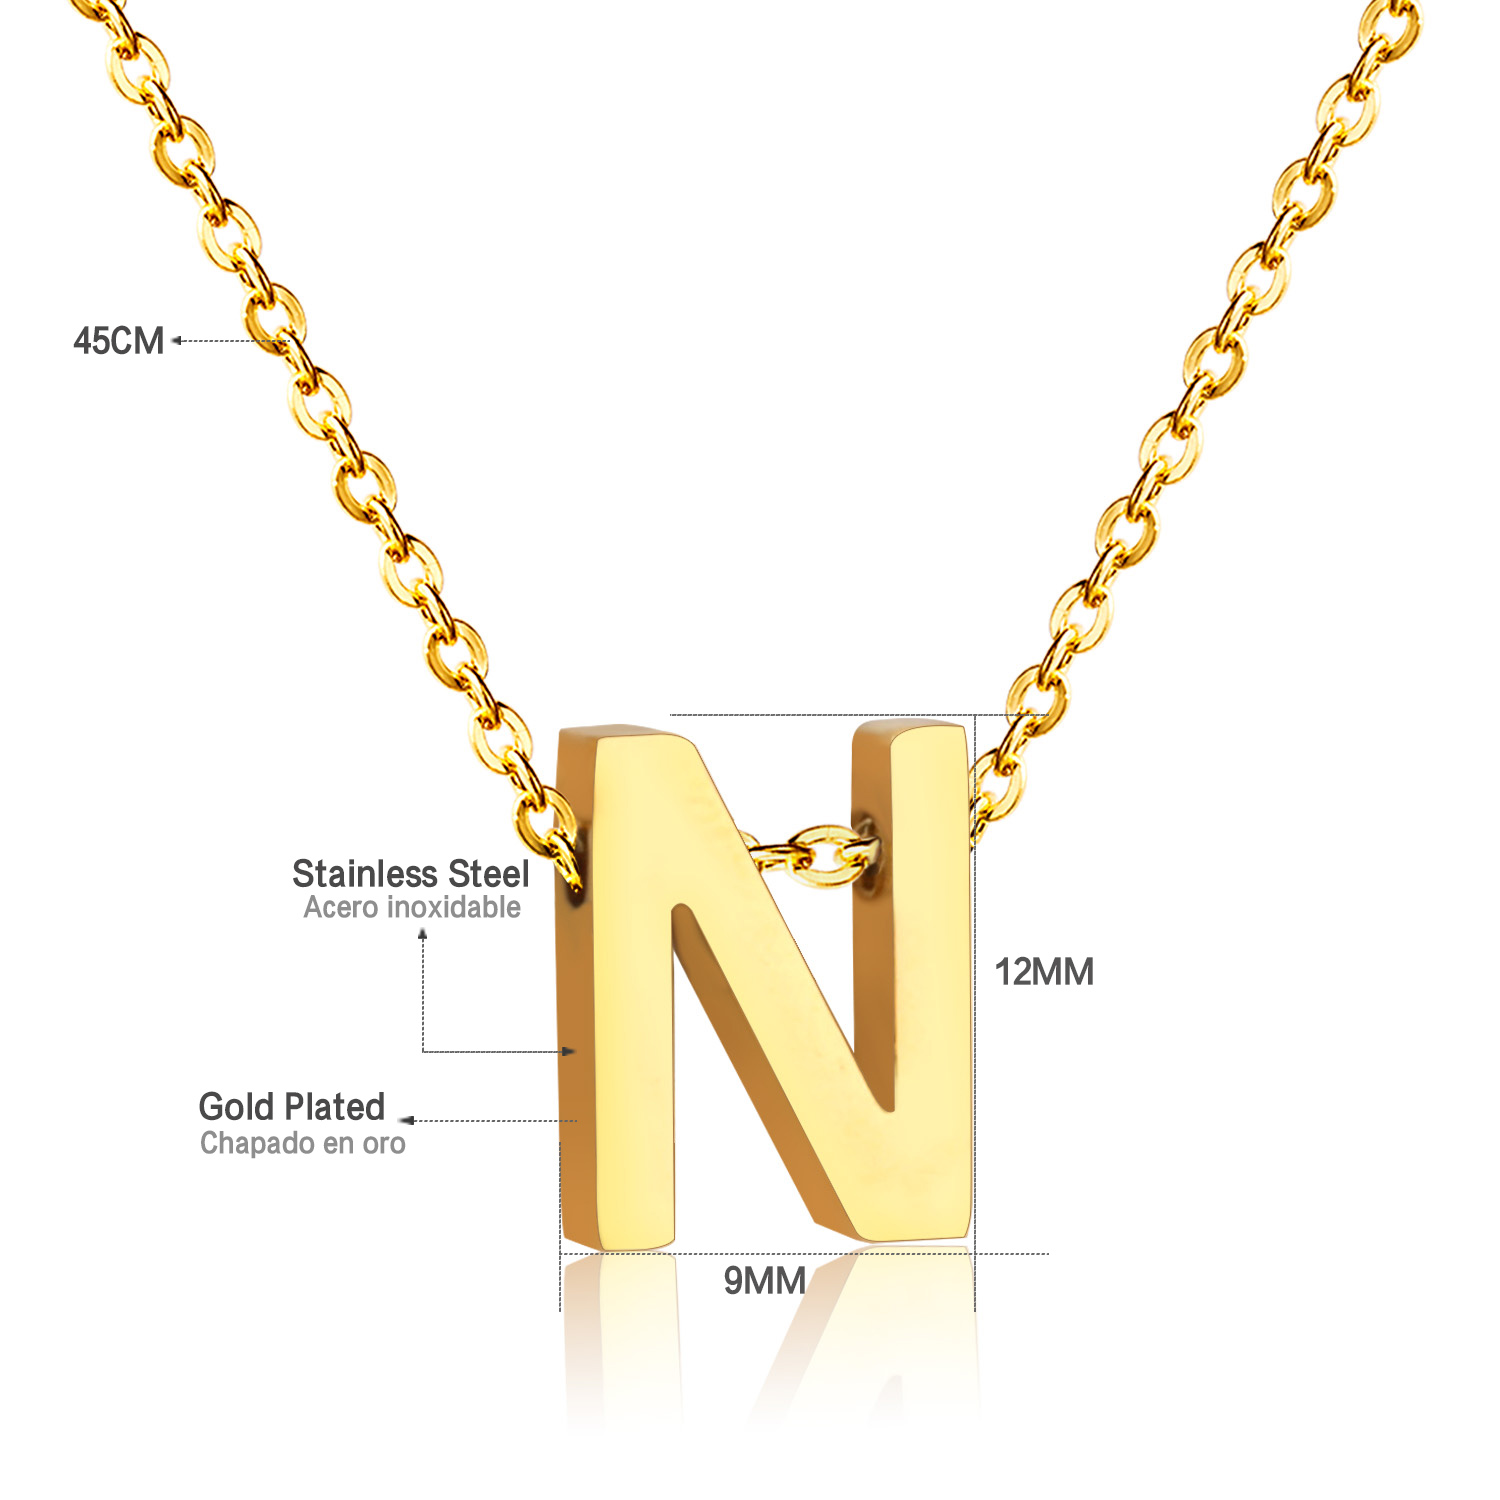 New Letter N Pendant Neclace In Pendant Necklaces From Jewelry Accessories On Aliexpress Com Alibaba Group